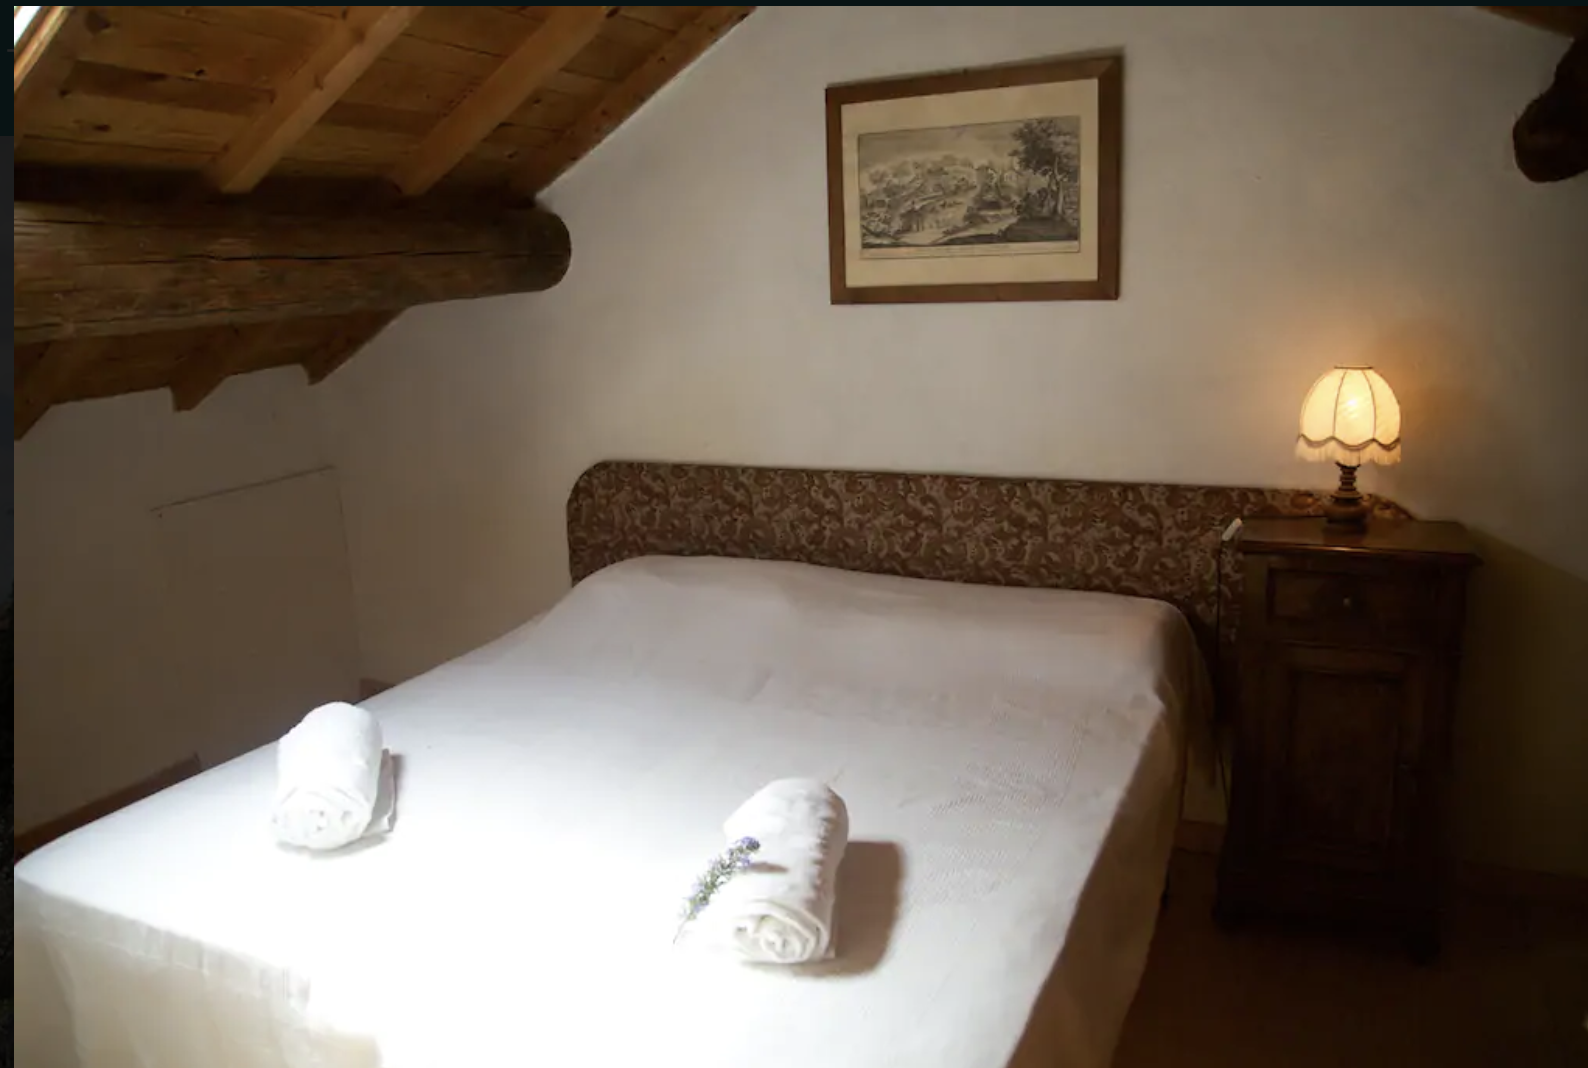 Fattoria 6 (2 bedrrom 2 bathroom apartment with sleeping loft. This upstairs bedroom can be made into a double as shown or two single beds. Apartment sleeps up to 7 guests)